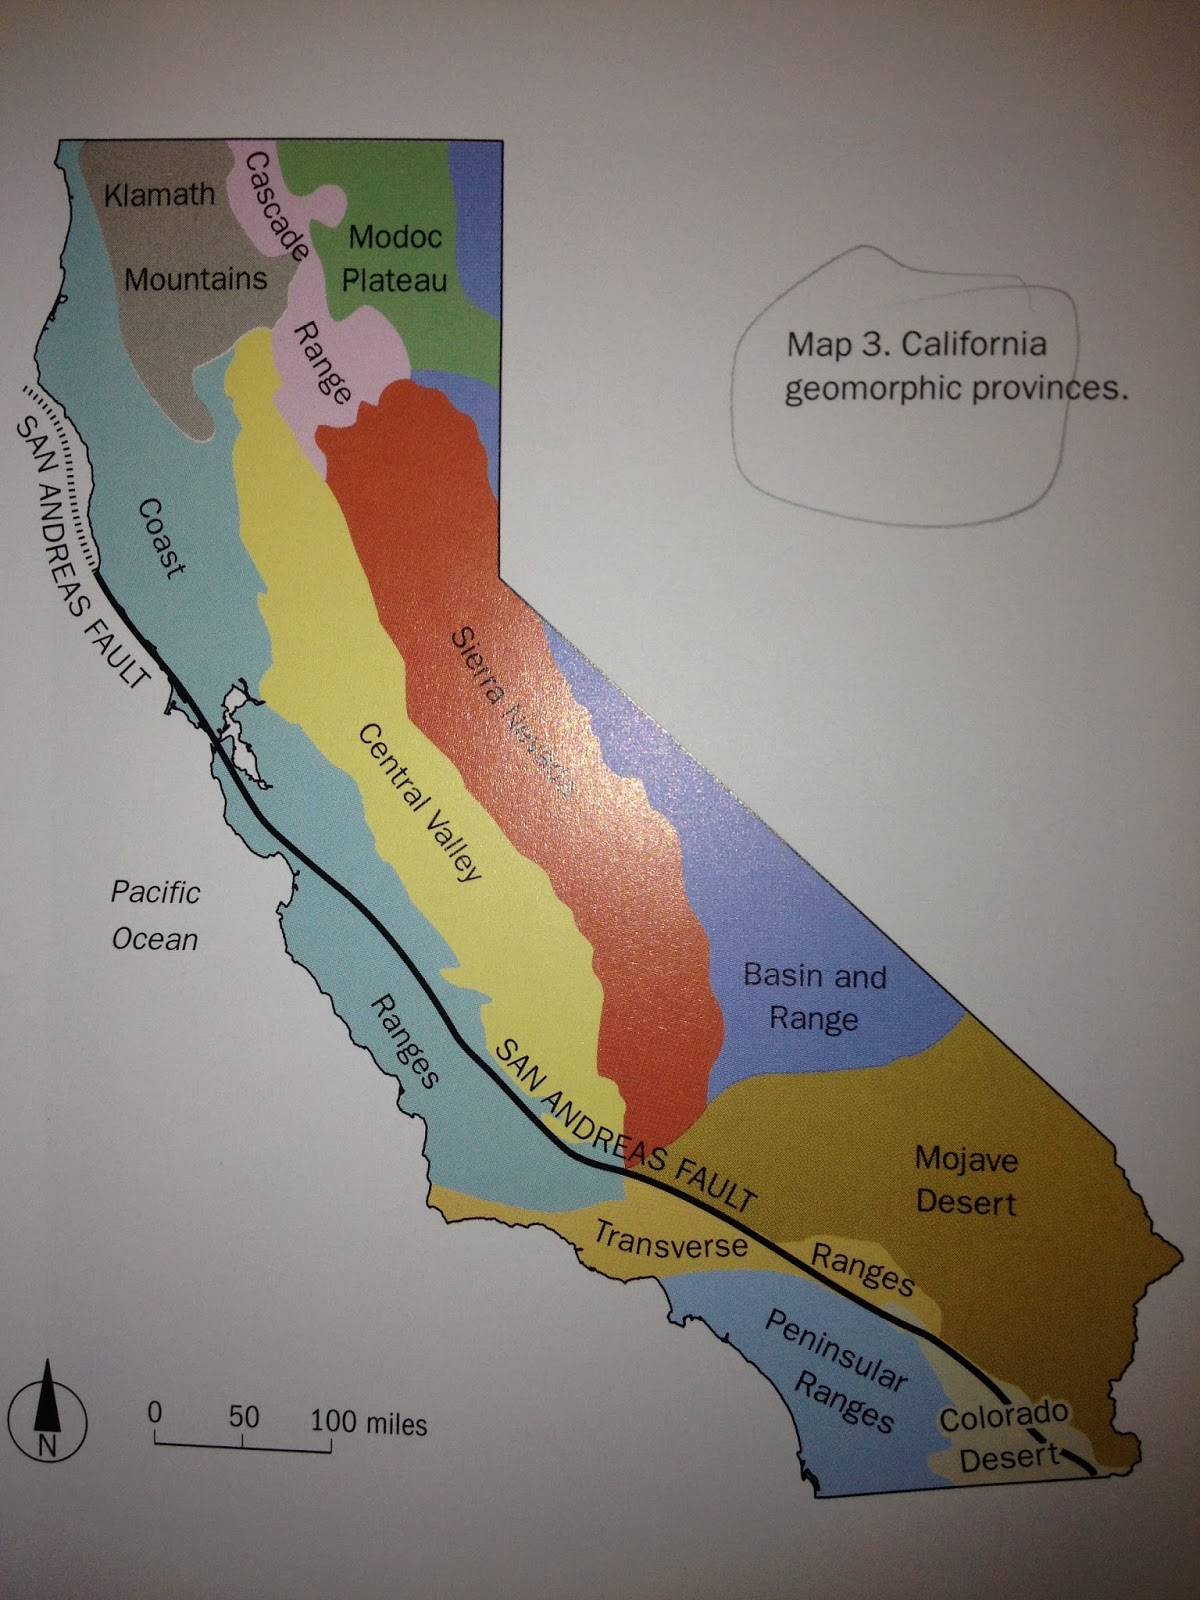 hight resolution of the san andreas fault passes exclusively through the coast ranges in northern ca image taken from geology of the san francisco bay region by